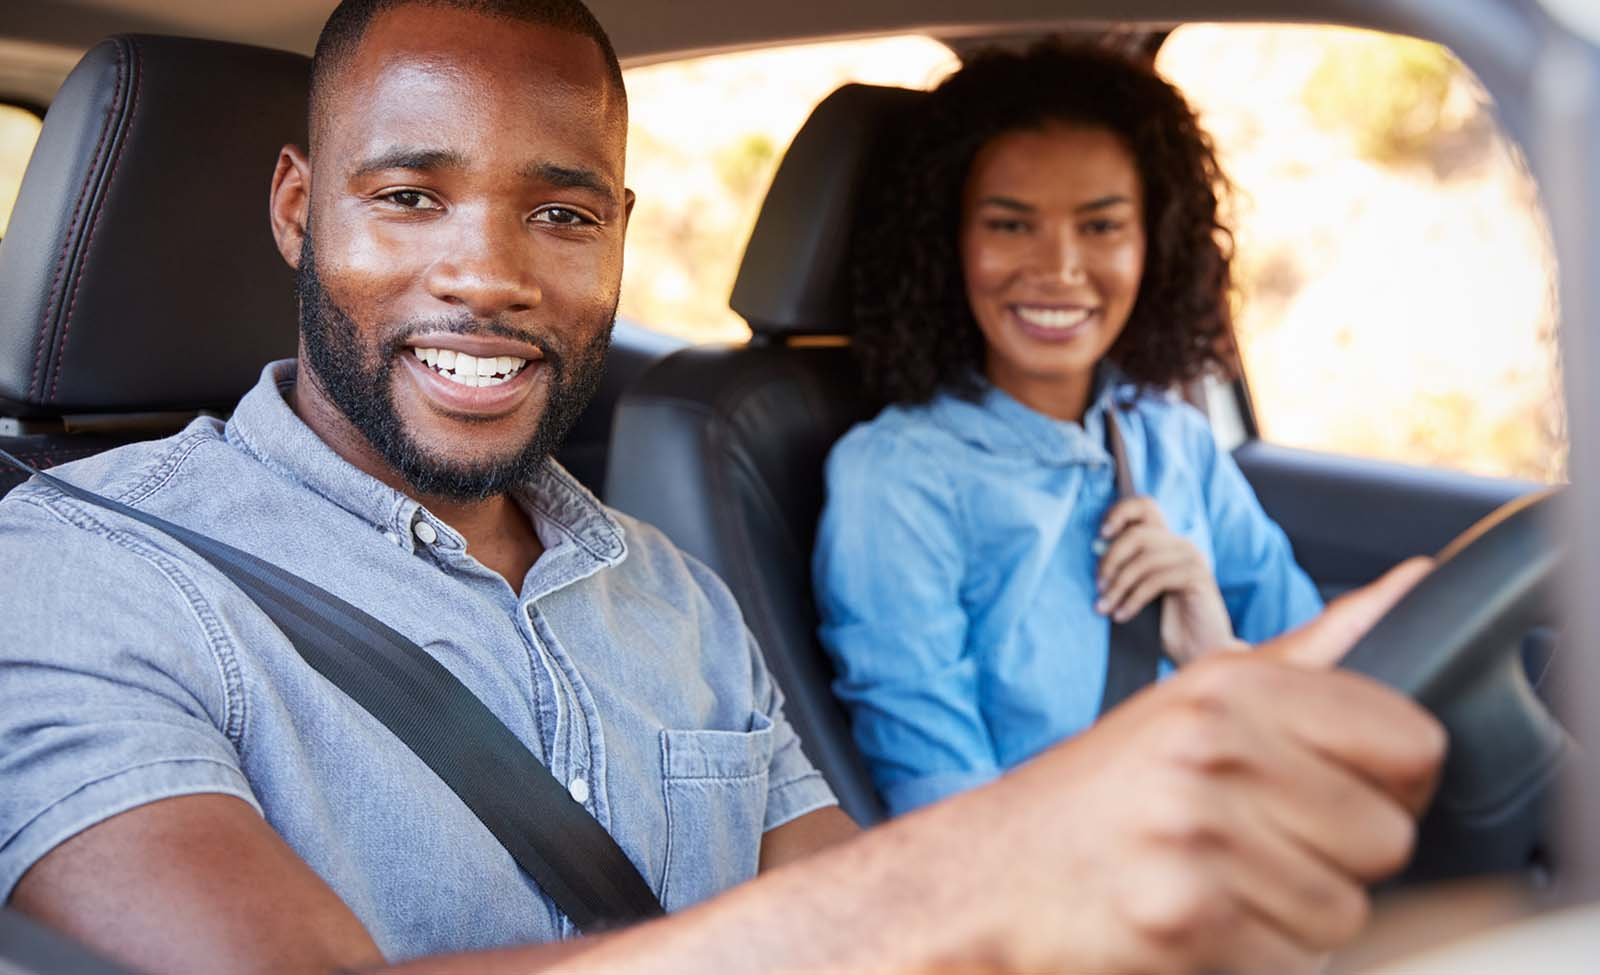 Is Refinancing Your Car a Good or Bad Idea